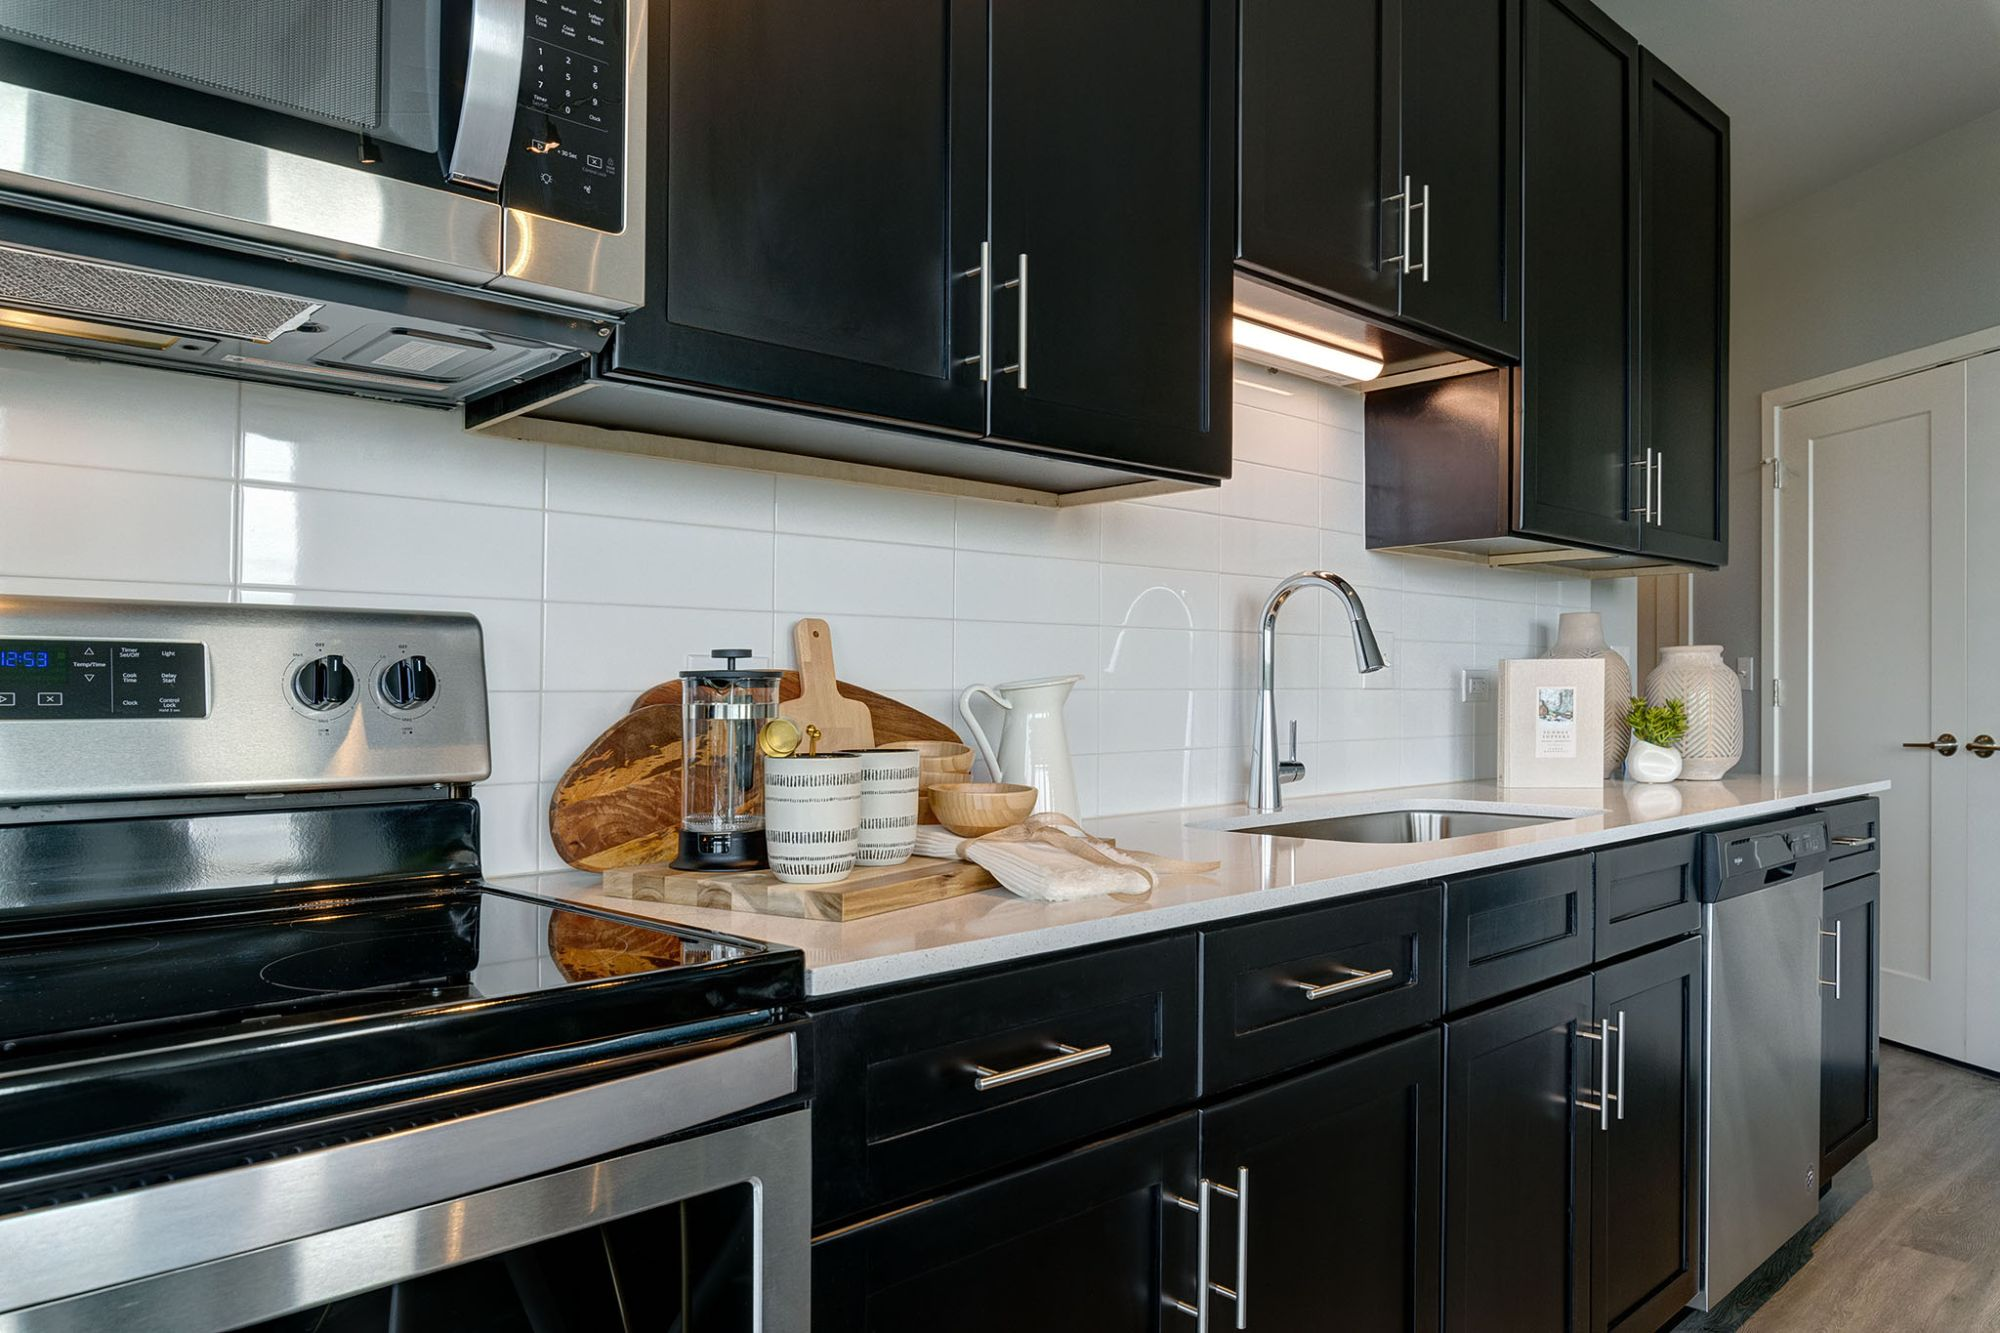 Kitchen cabinets with stainless steel stove and microwave